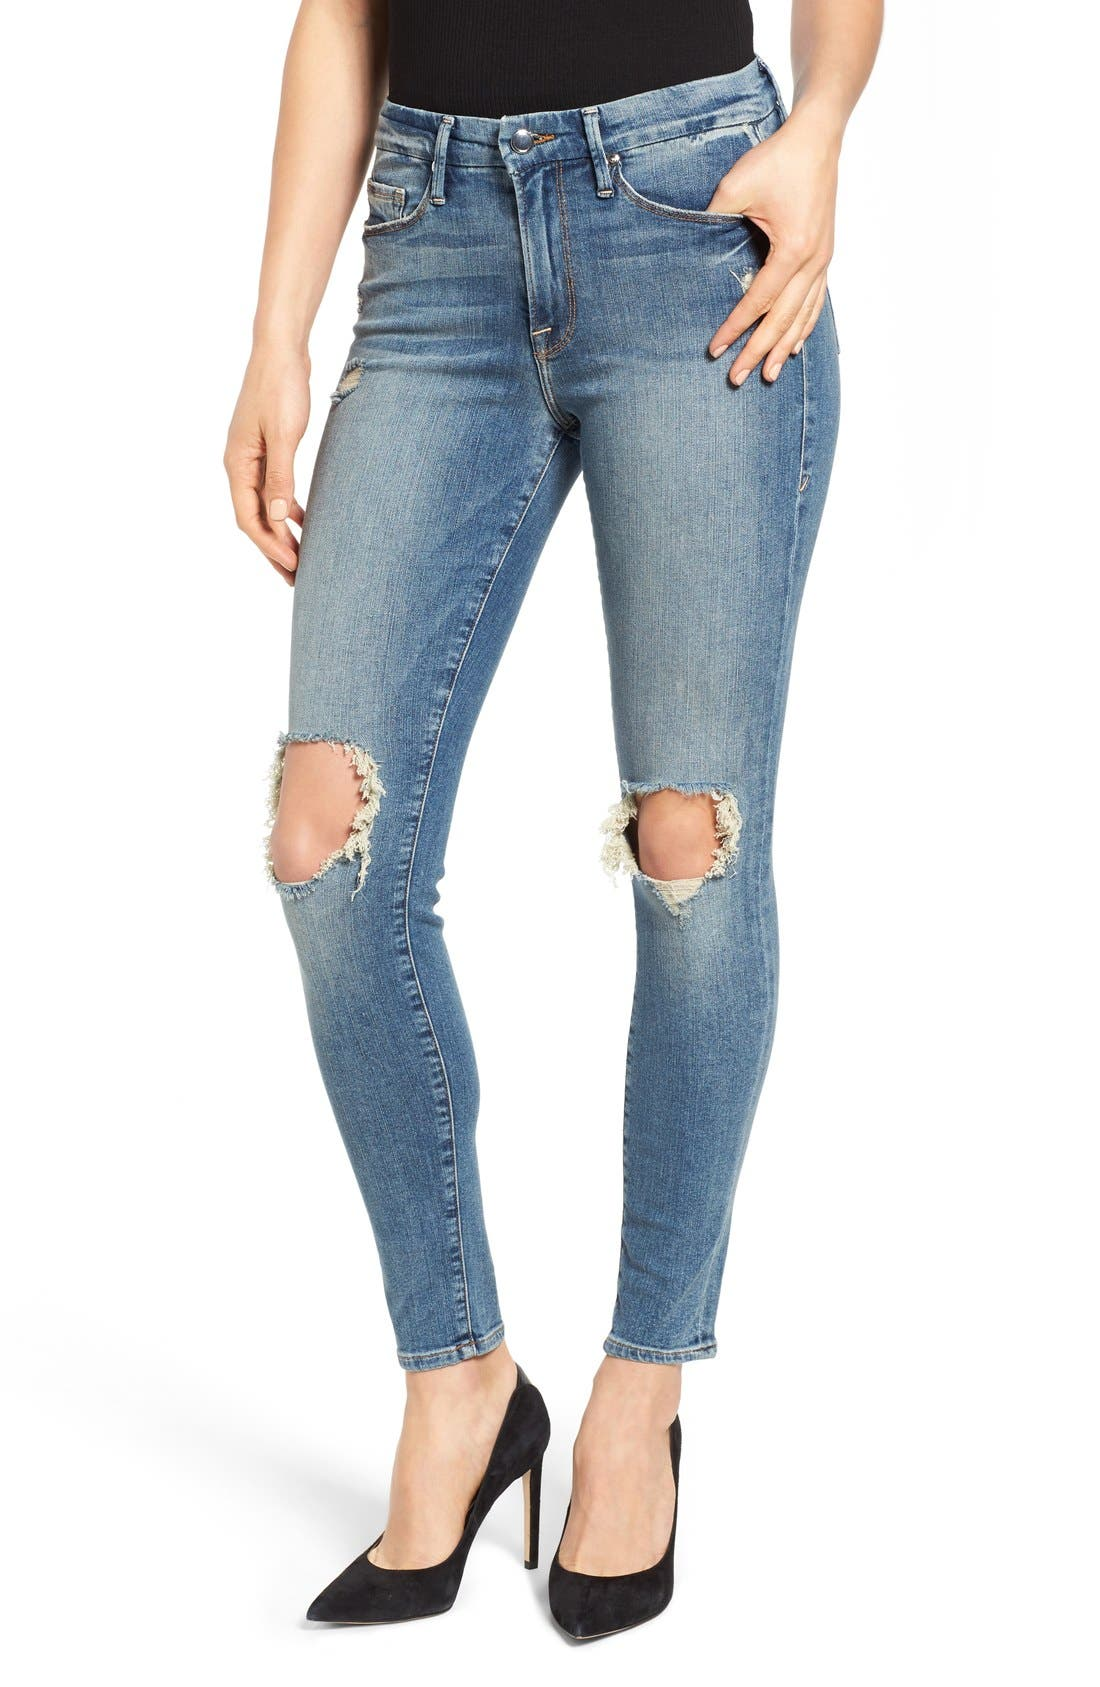 Alternate Image 1 Selected - Good American Good Legs High Rise Ripped Skinny Jeans (Blue 006)